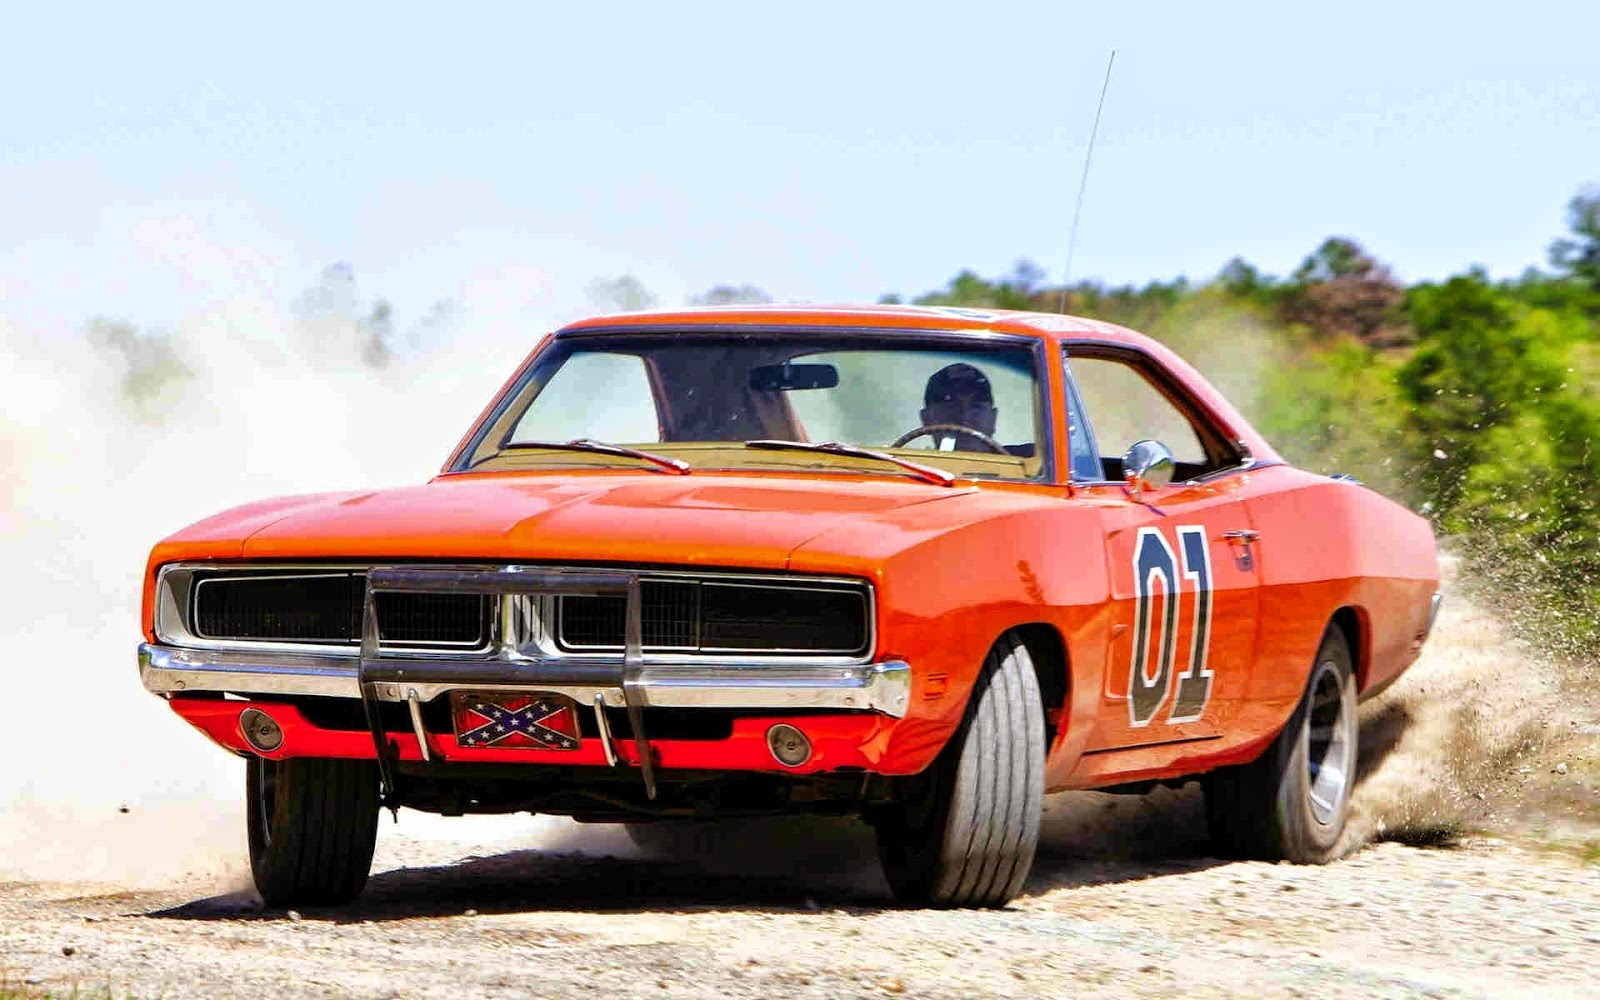 Dodge-Charger - Fast-And-Furious -Classic Car in Movie ...